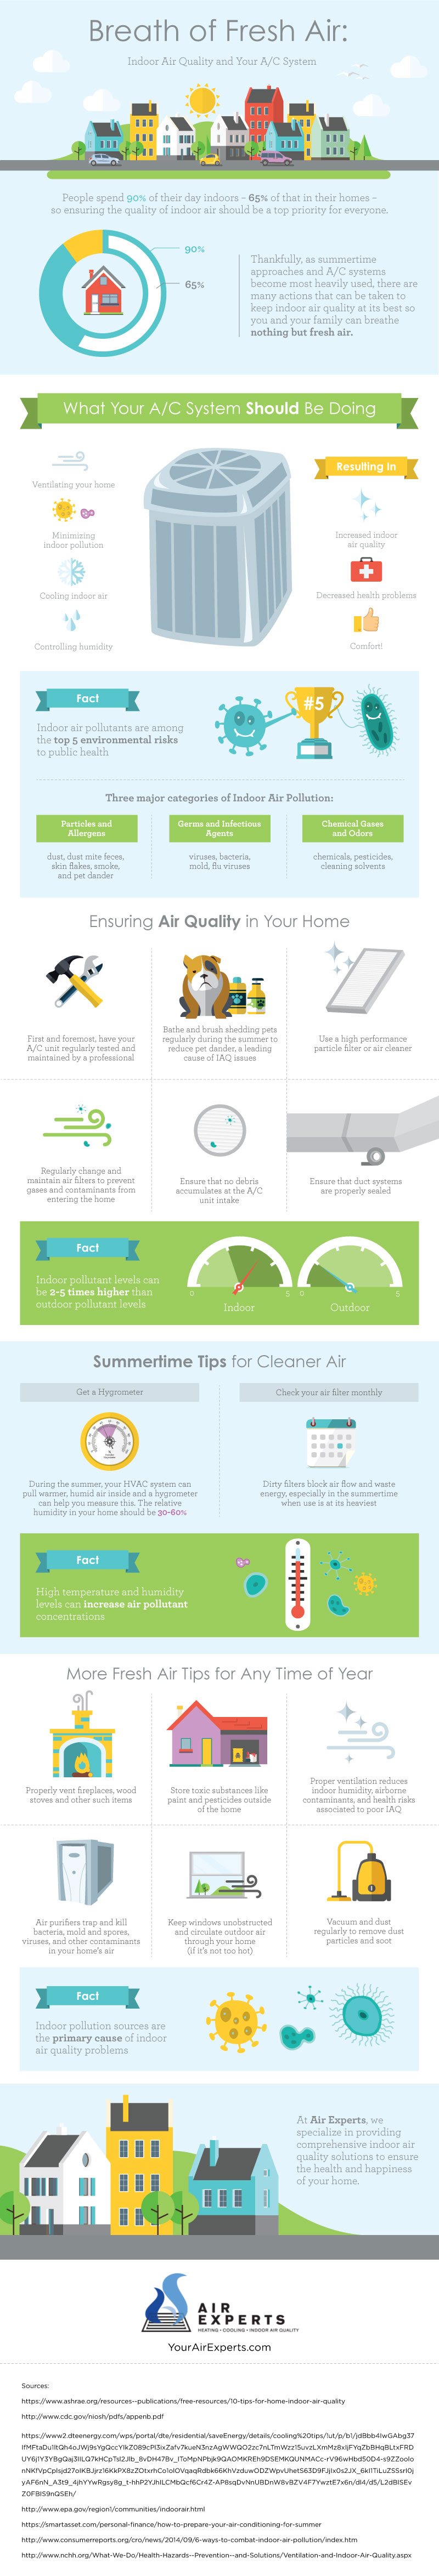 Indoor Air Quality and Your AC System